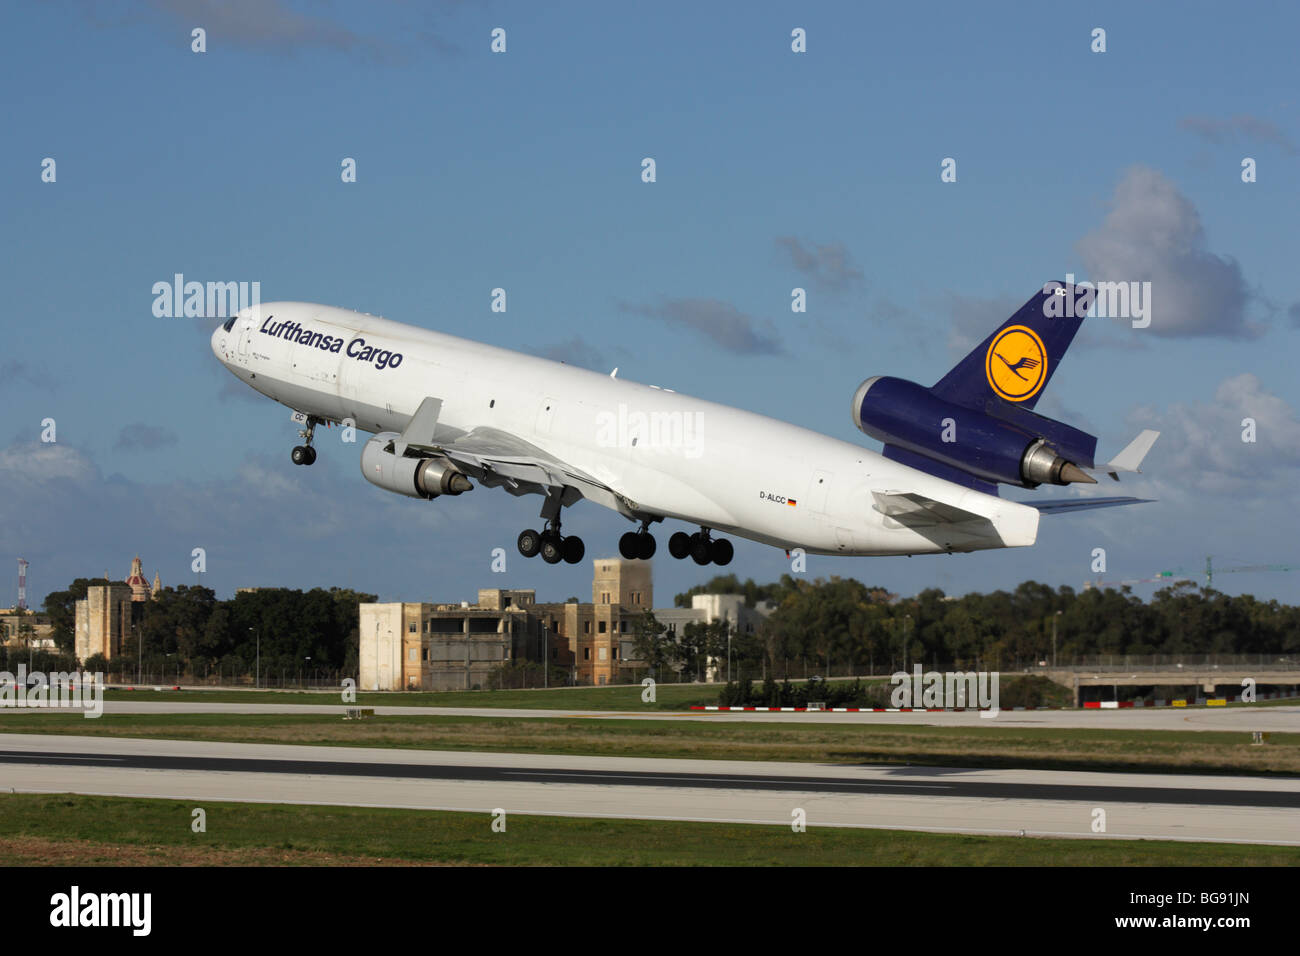 Air Freight Transport Lufthansa Cargo Md 11f Commercial Jet Plane On Stock Photo Alamy